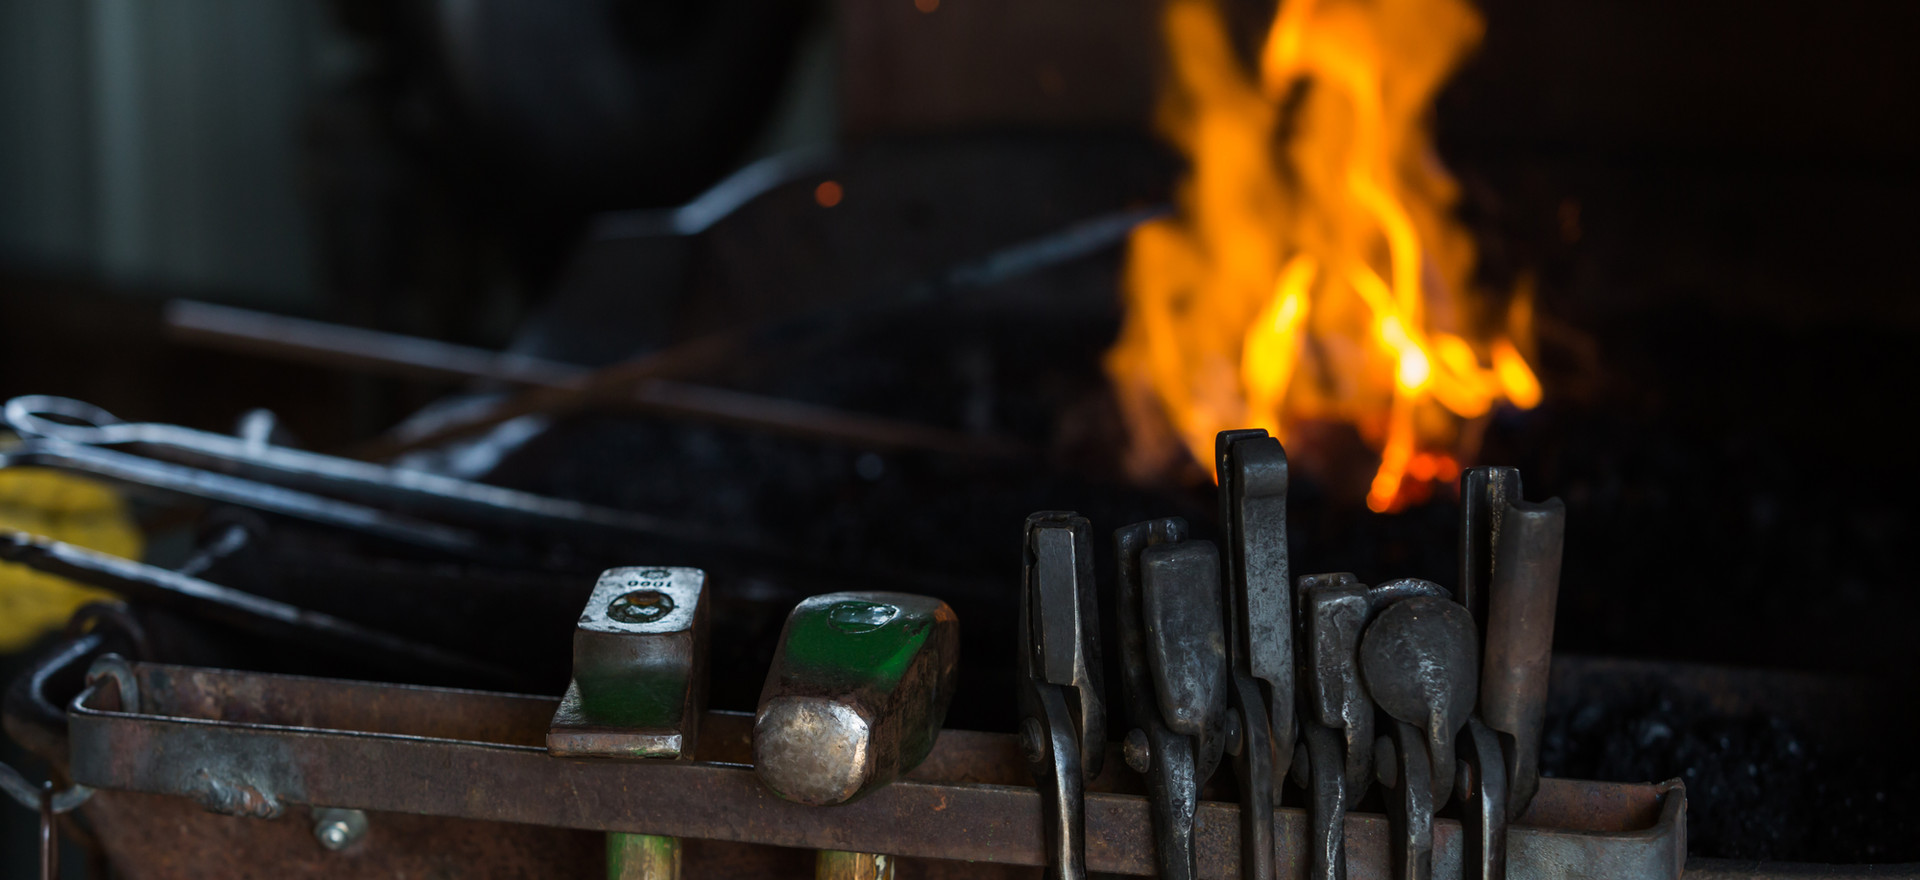 Iron Working Tools and fire